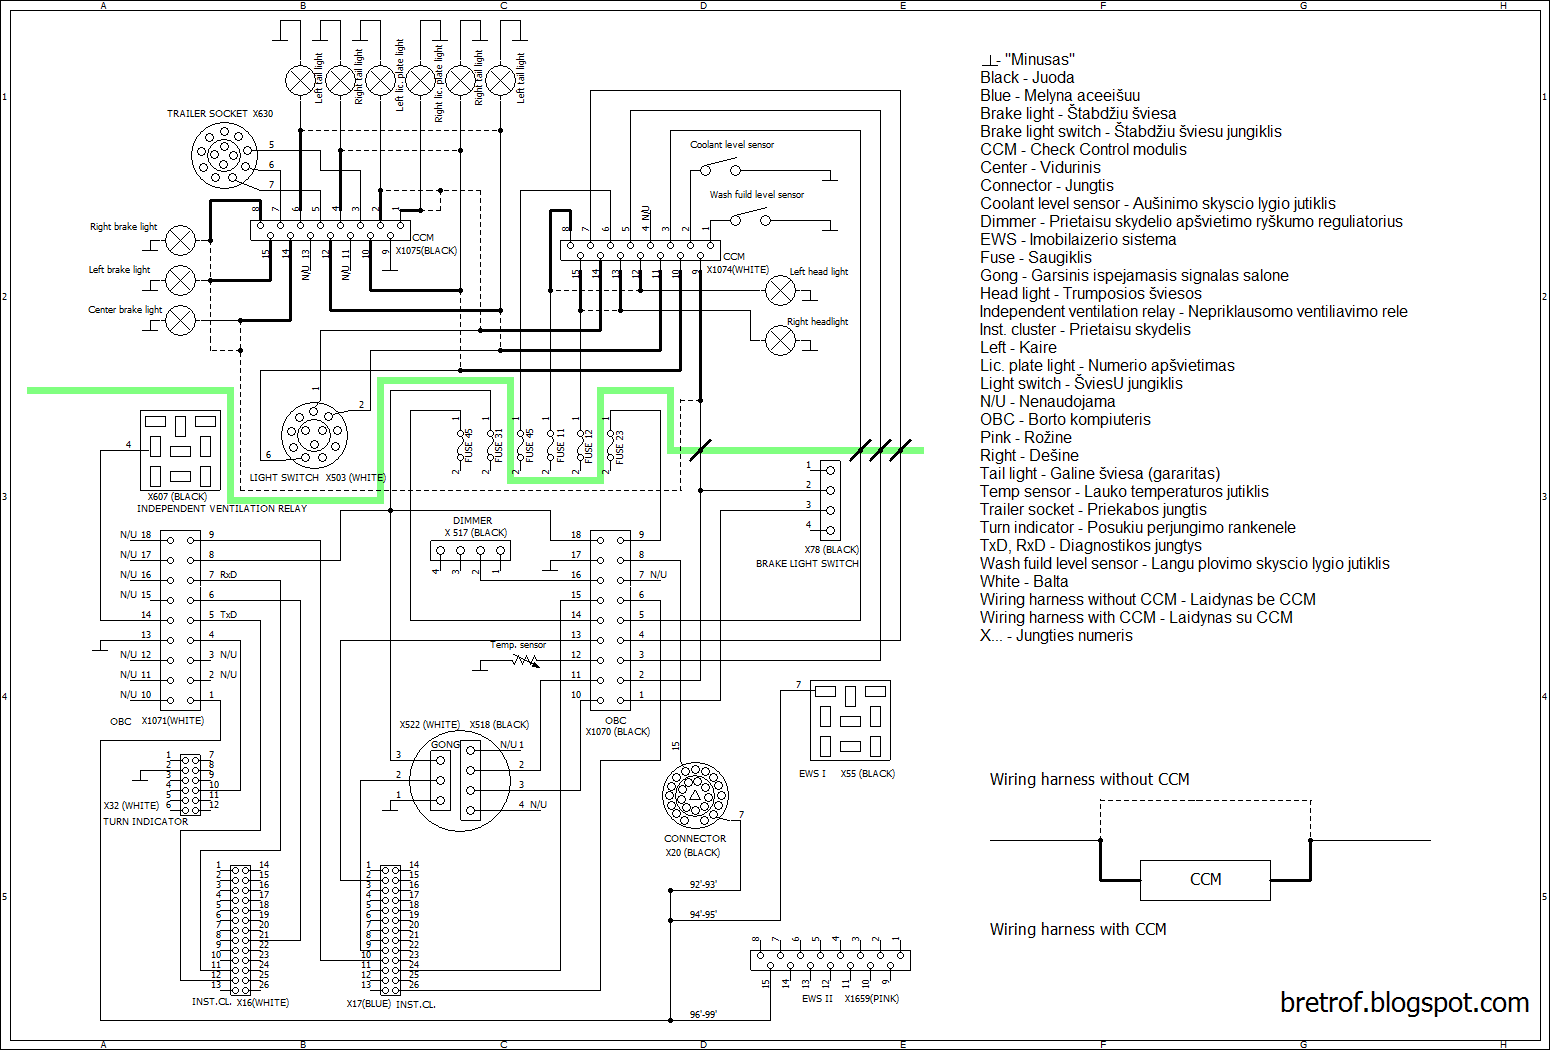 Wiring Diagram Radio 1994 Dodge Ram 1500 besides Showthread as well 2002 Ford Taurus Se 3 0 Engine Diagram also Wiring Diagram Under Dash 2011 Toyota Highlander together with RepairGuideContent. on 2008 bmw 528i wiring diagrams